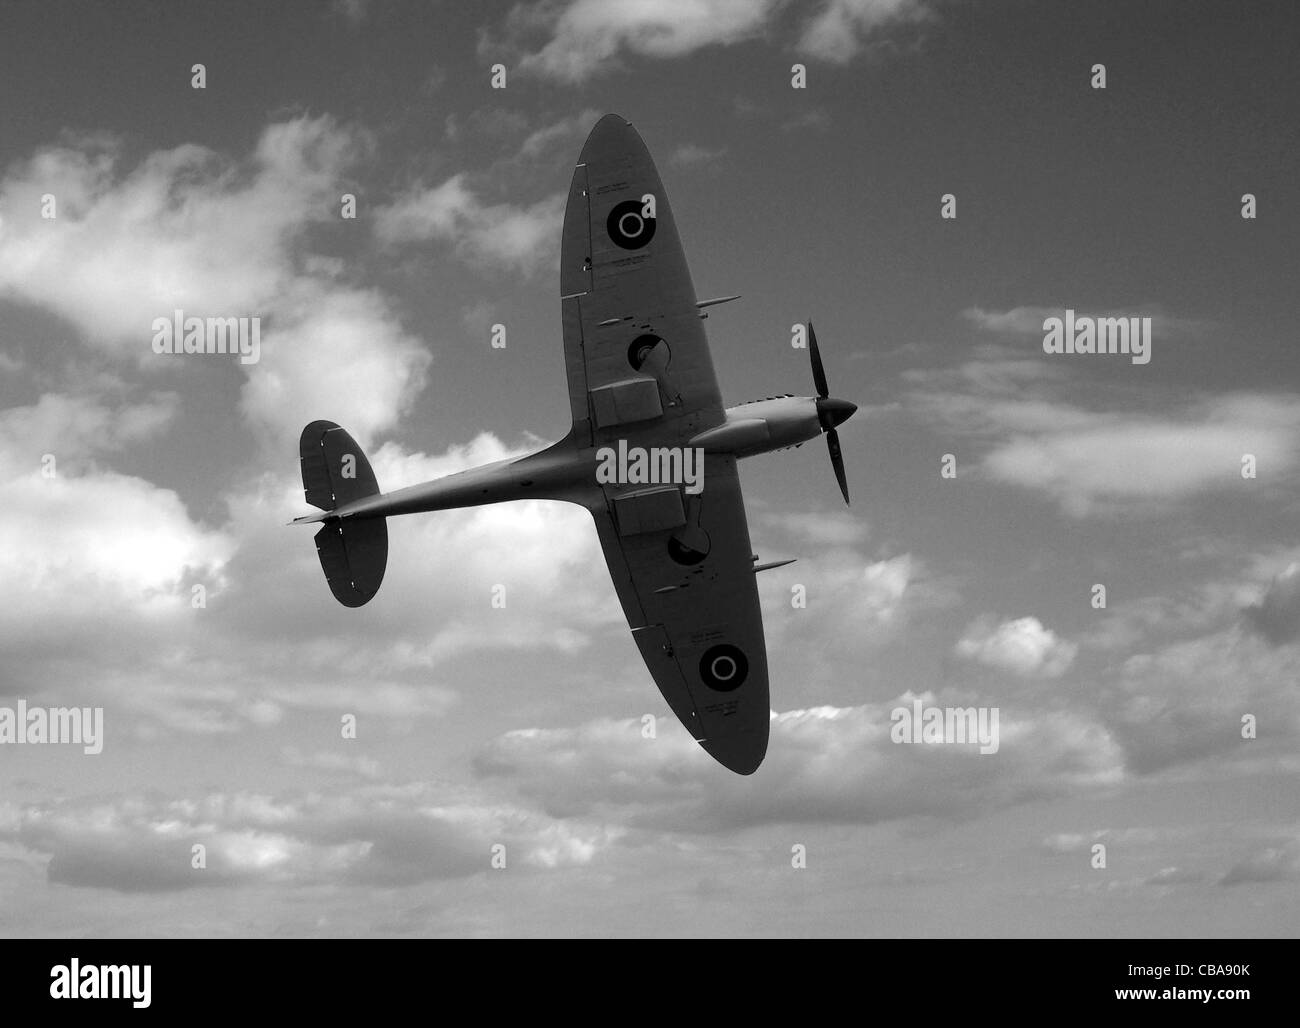 A SUPERMARINE SPITFIRE AGAINST THE SKY. - Stock Image